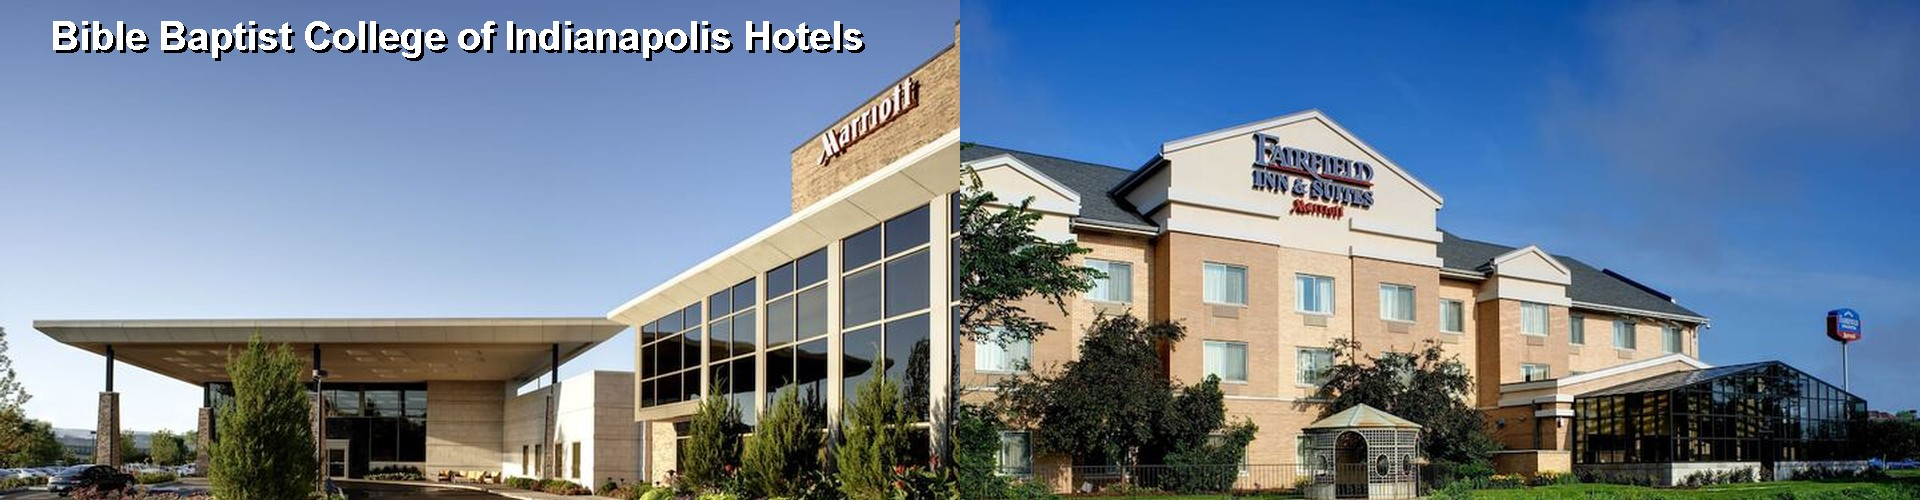 5 Best Hotels near Bible Baptist College of Indianapolis